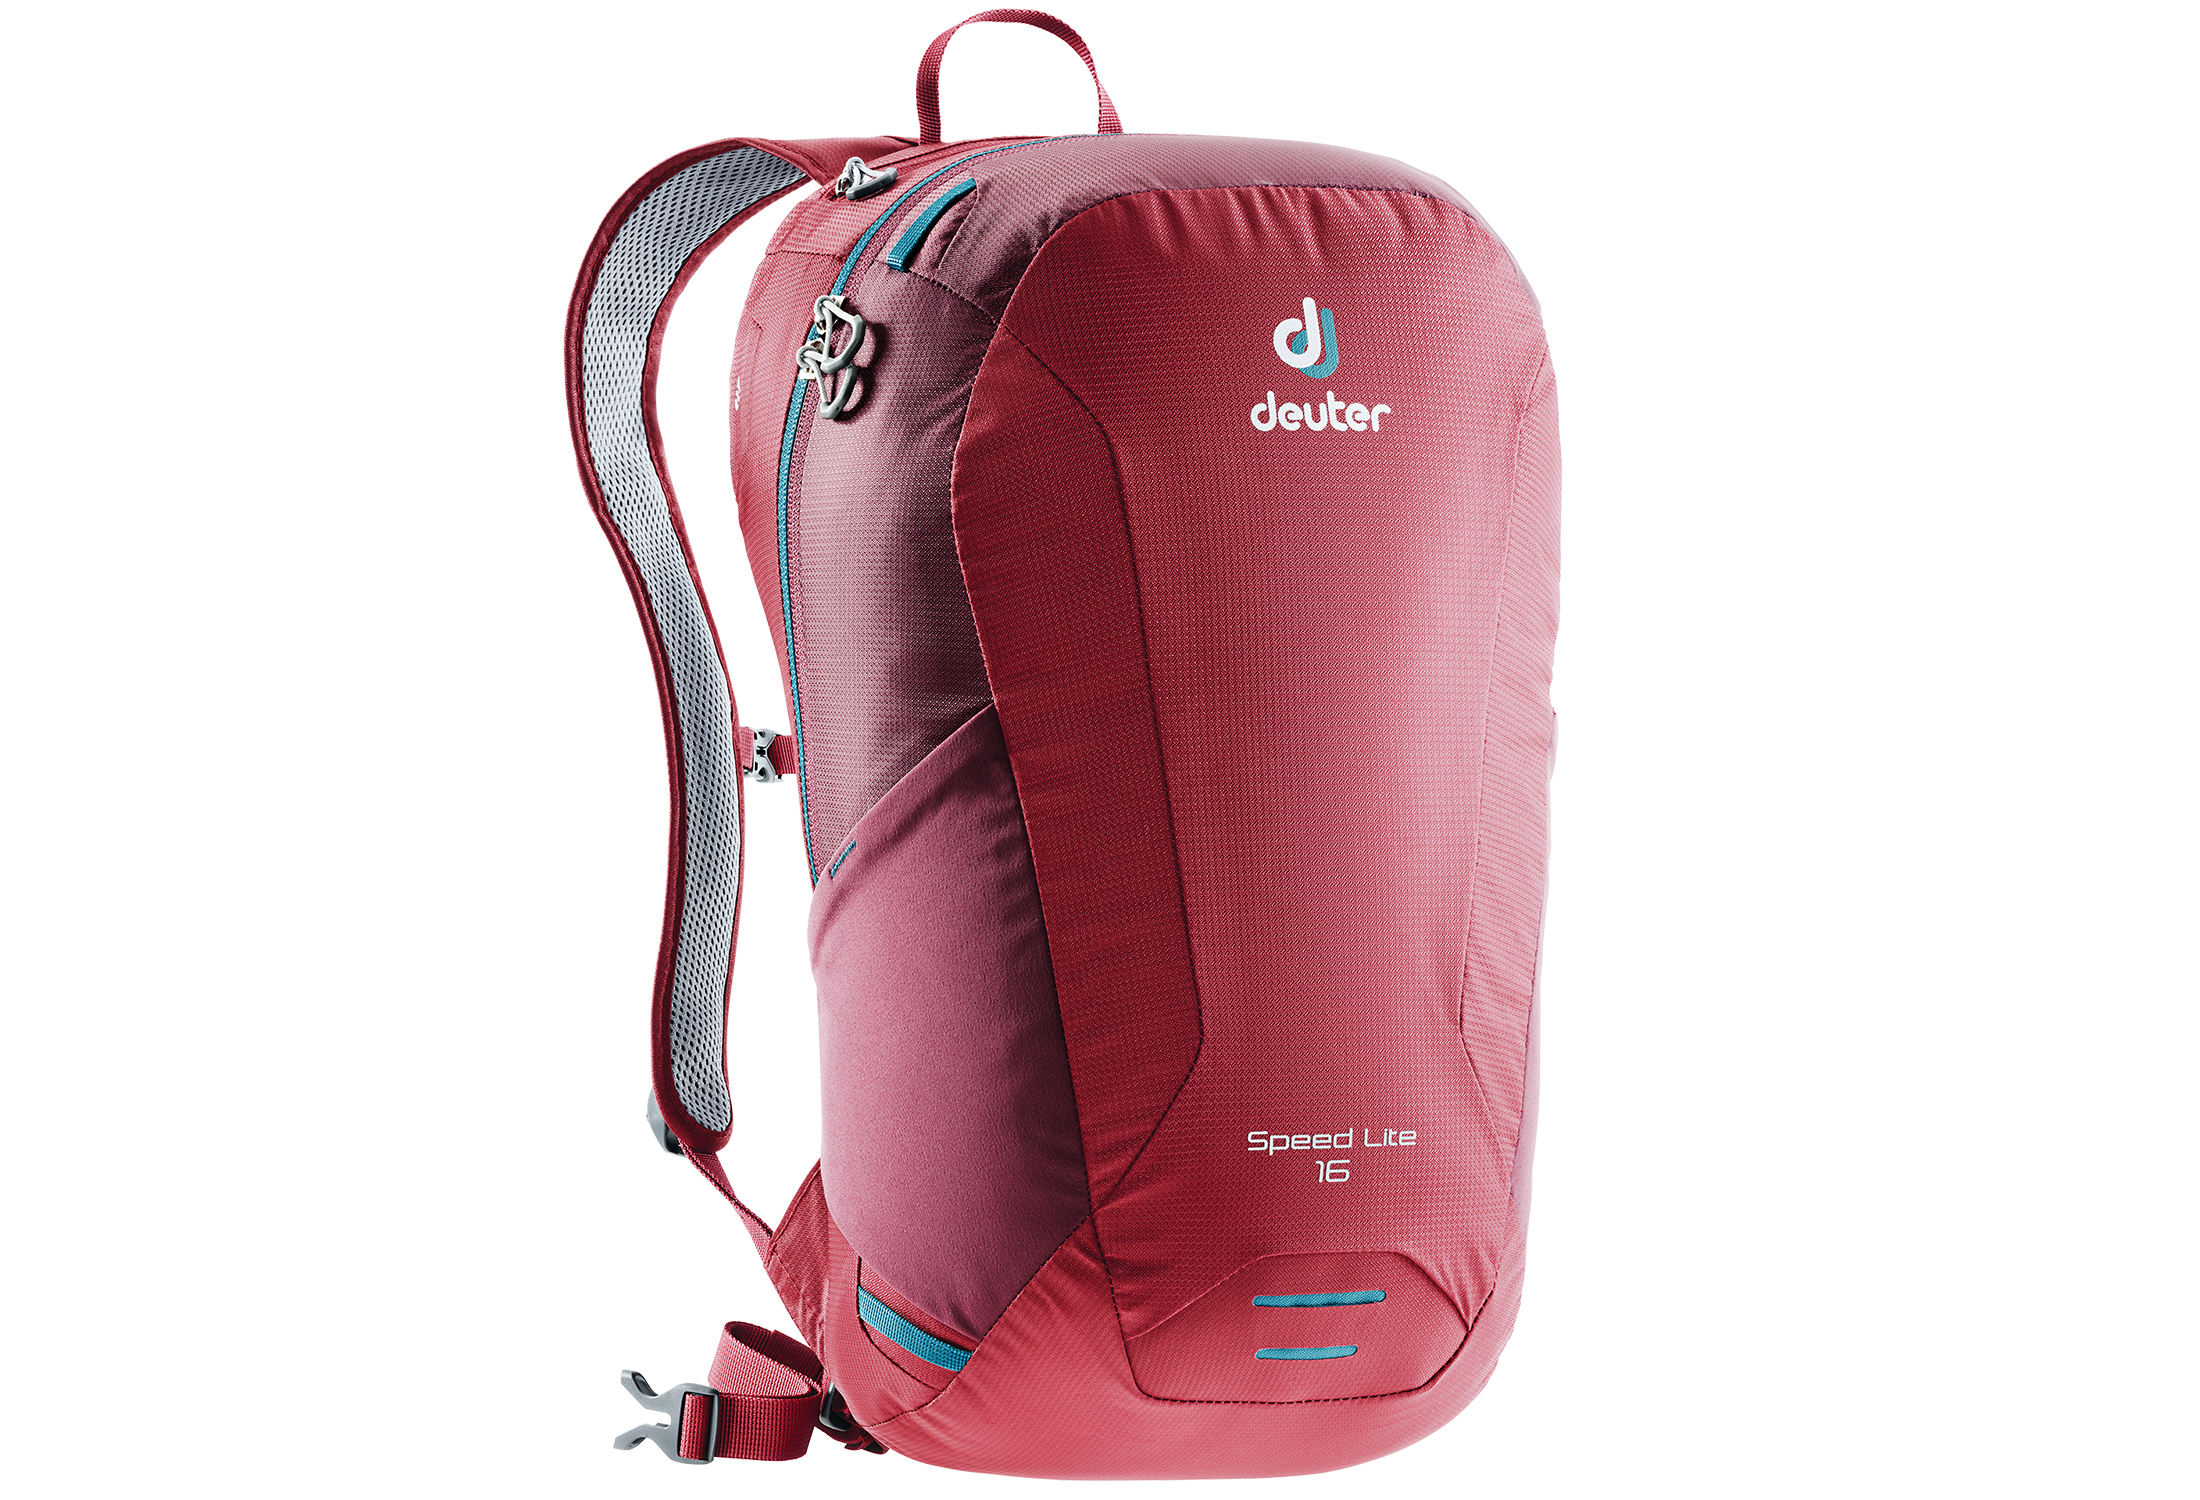 deuter speedlite 16 pack